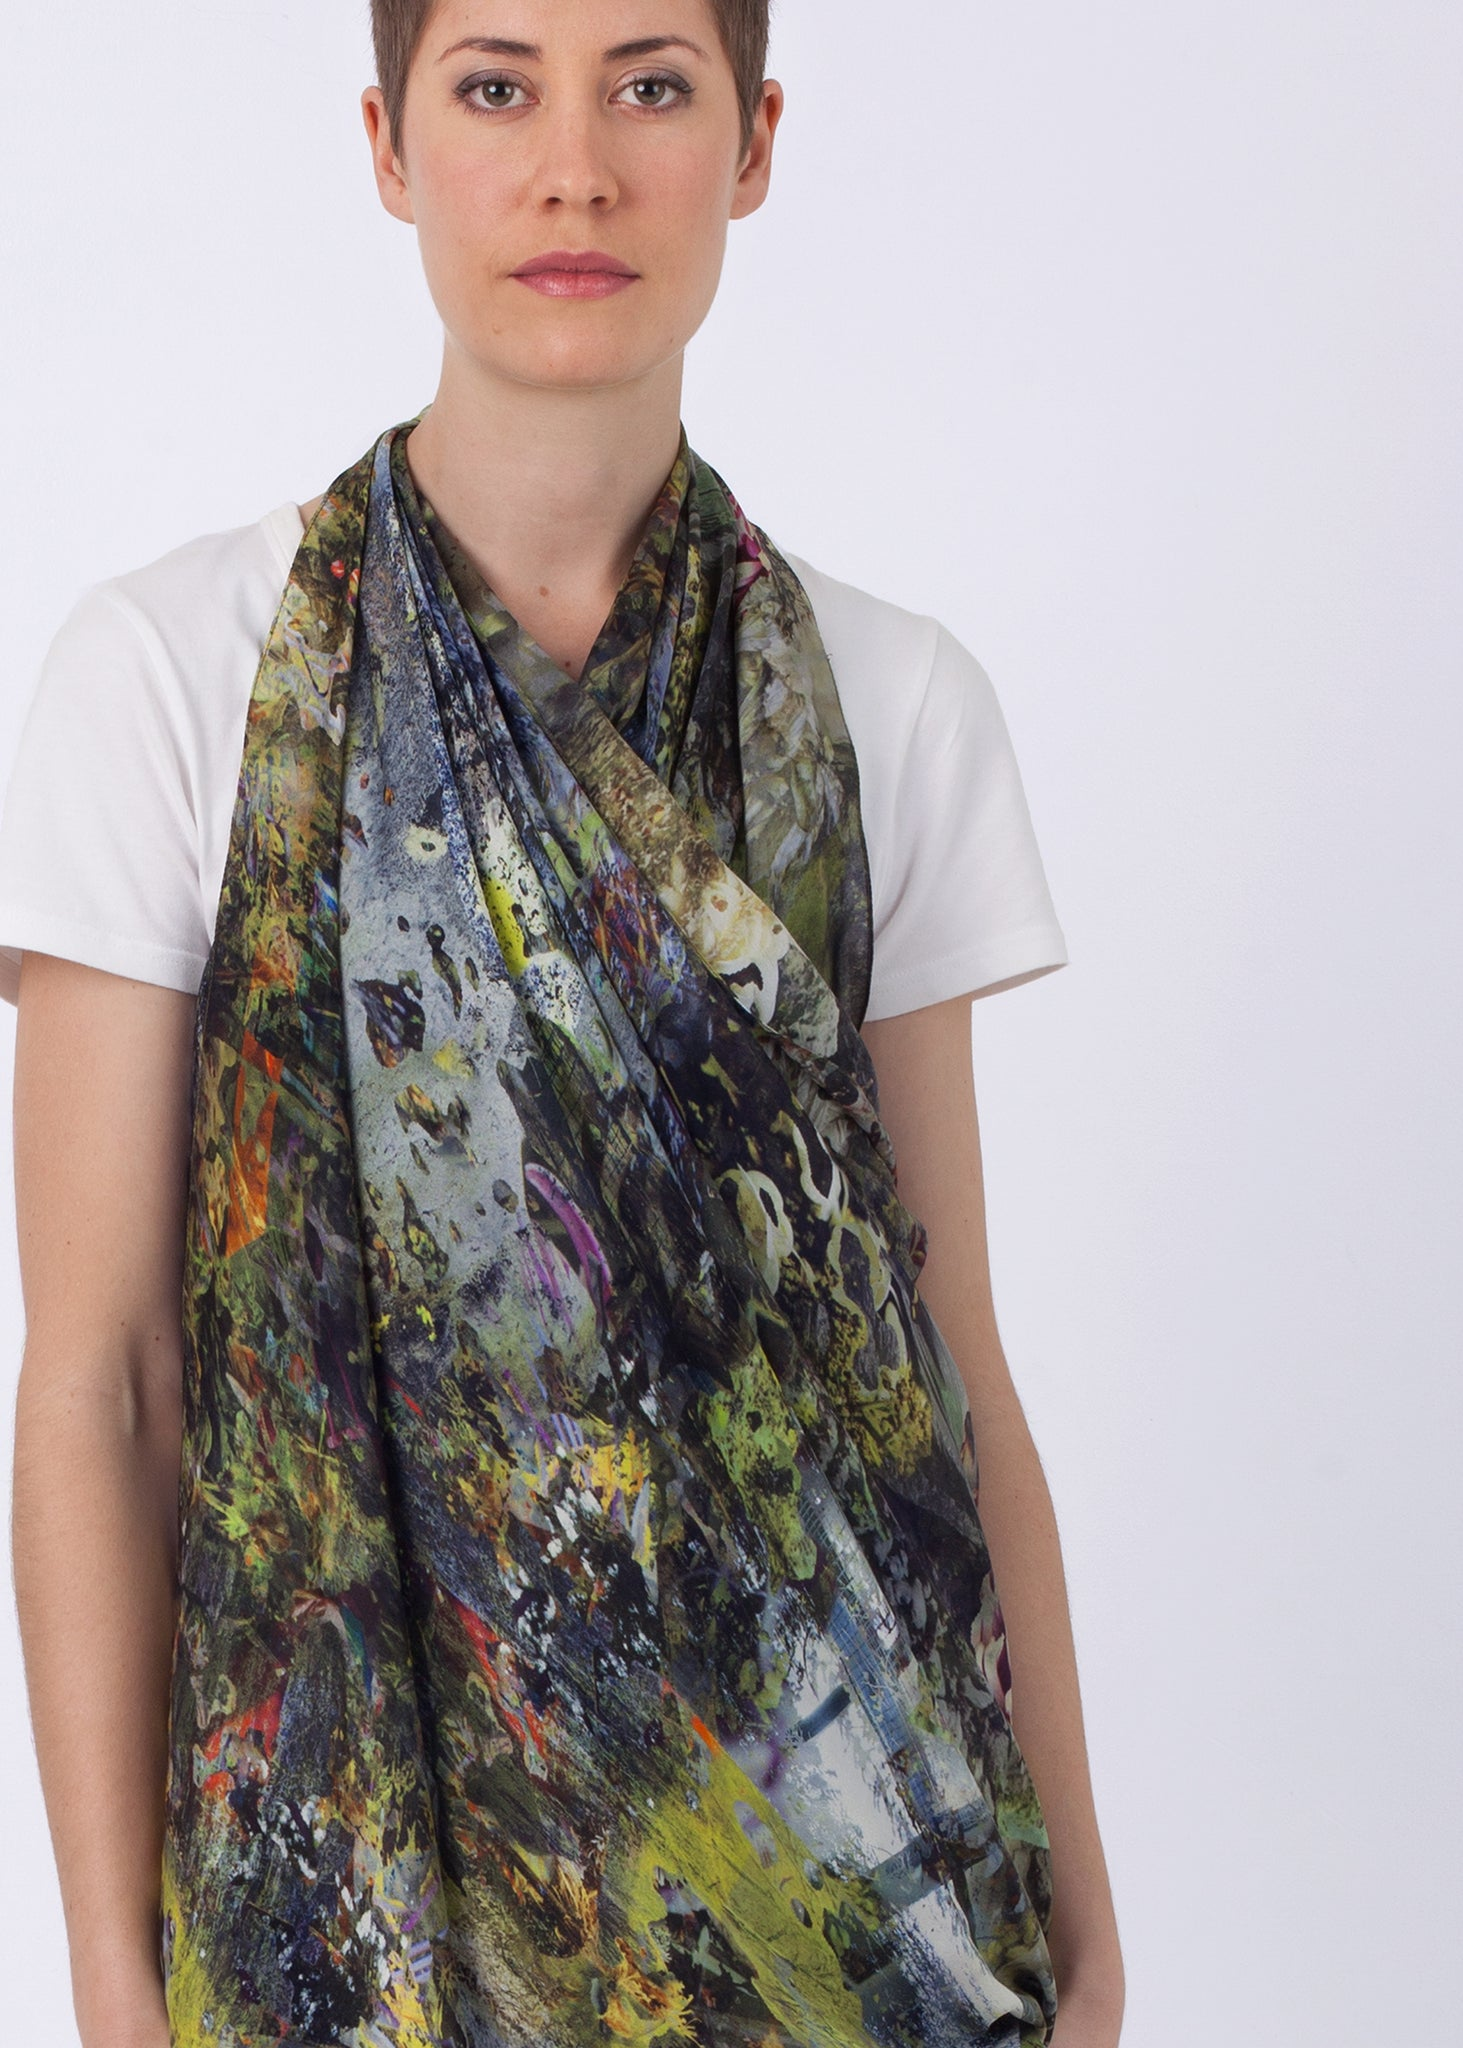 #lesslandfill Picture Silk Scarf, ethical fashion, sustainable fashion, designer clothes, plus size clothing, textile print clothing, luxury online fashion, slow fashion